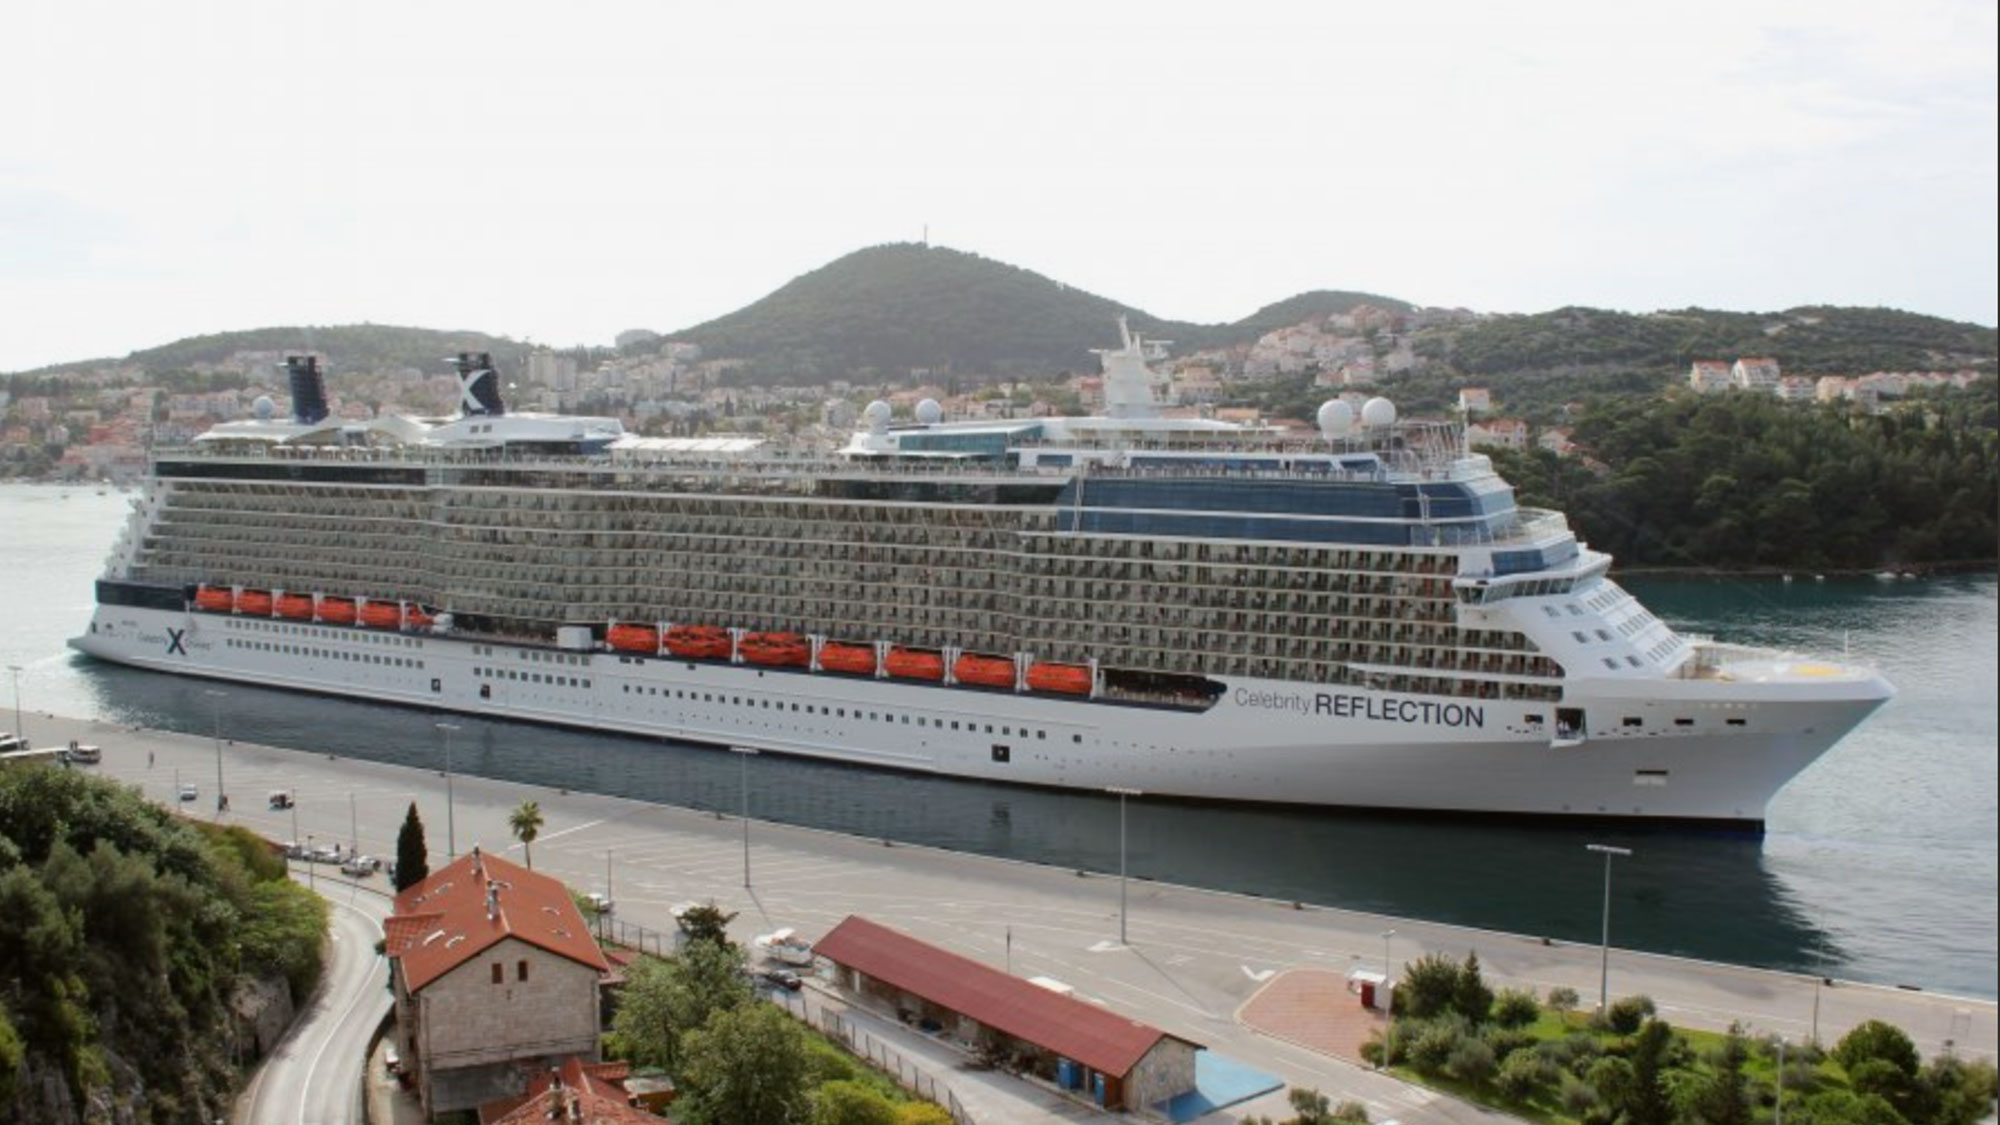 We Travel 2u Cruise Tiket Genting Dream Special New Year Dep 30 December 2018 The Celebtity Reflection In Dubrovnik